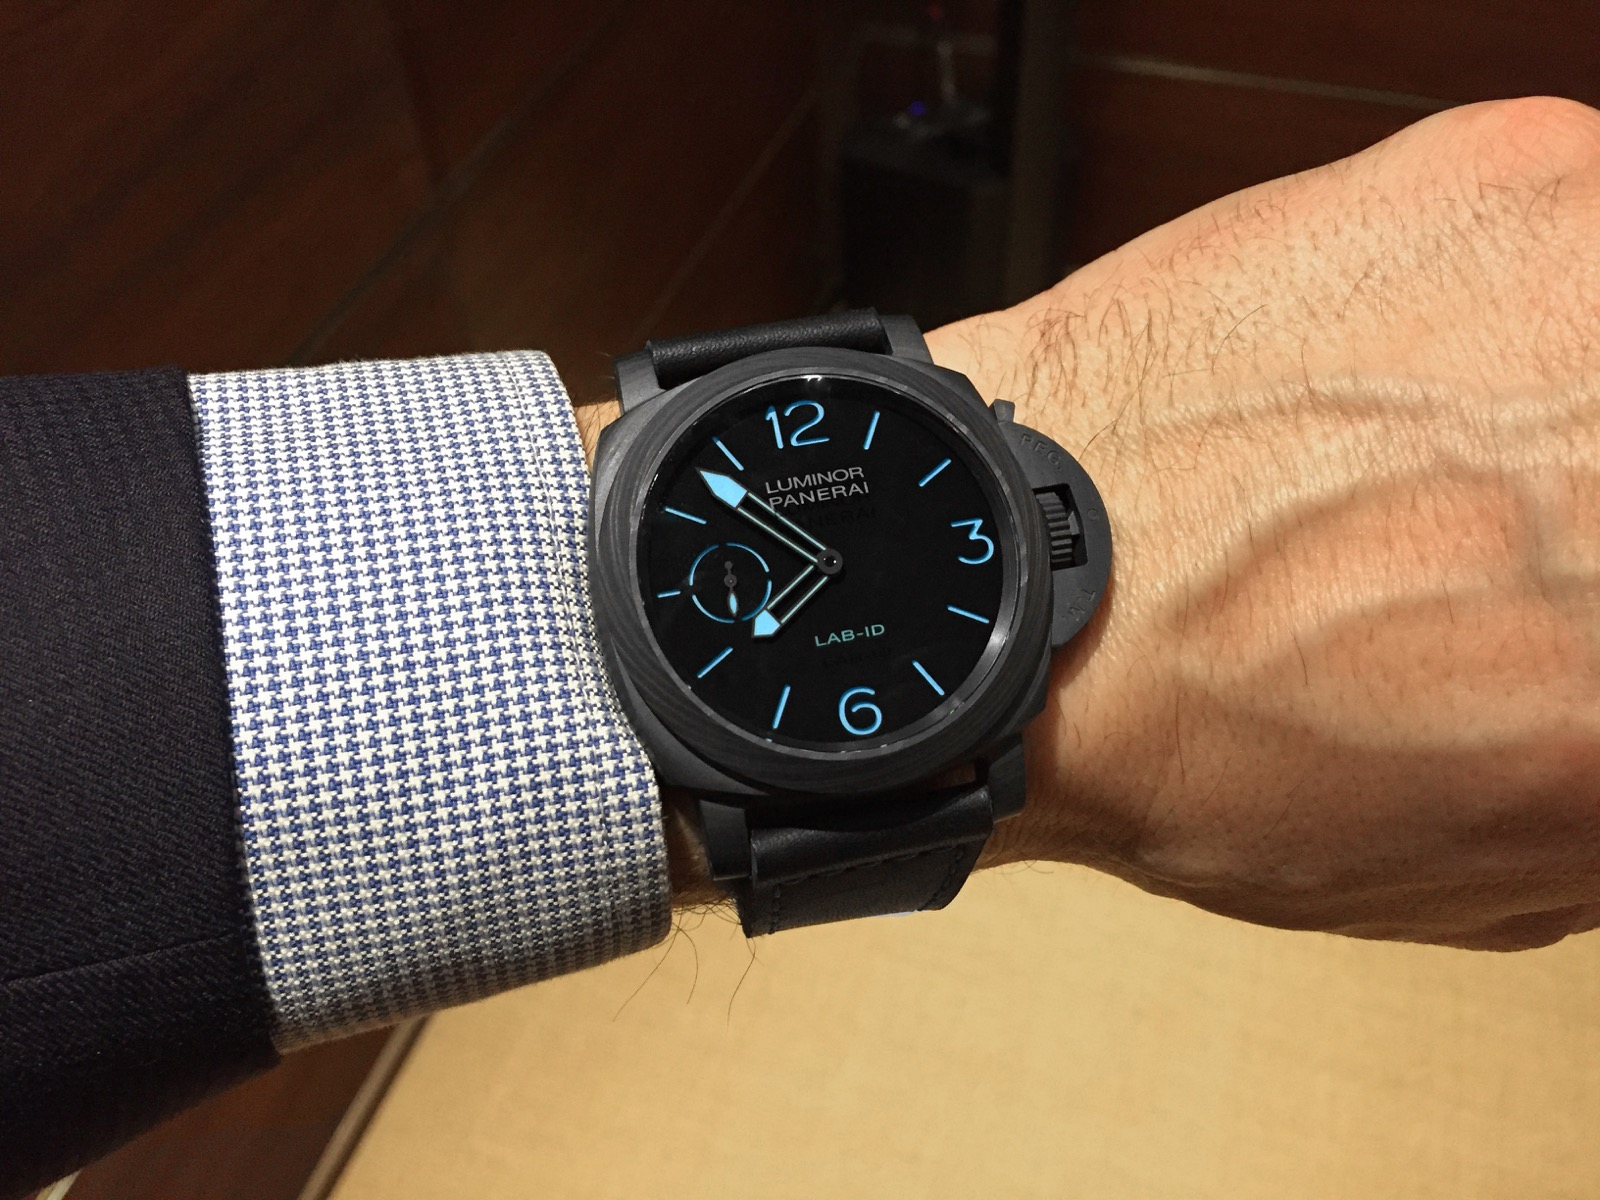 Panerai Luminor 1950 LAB-ID PAM700 (2017)